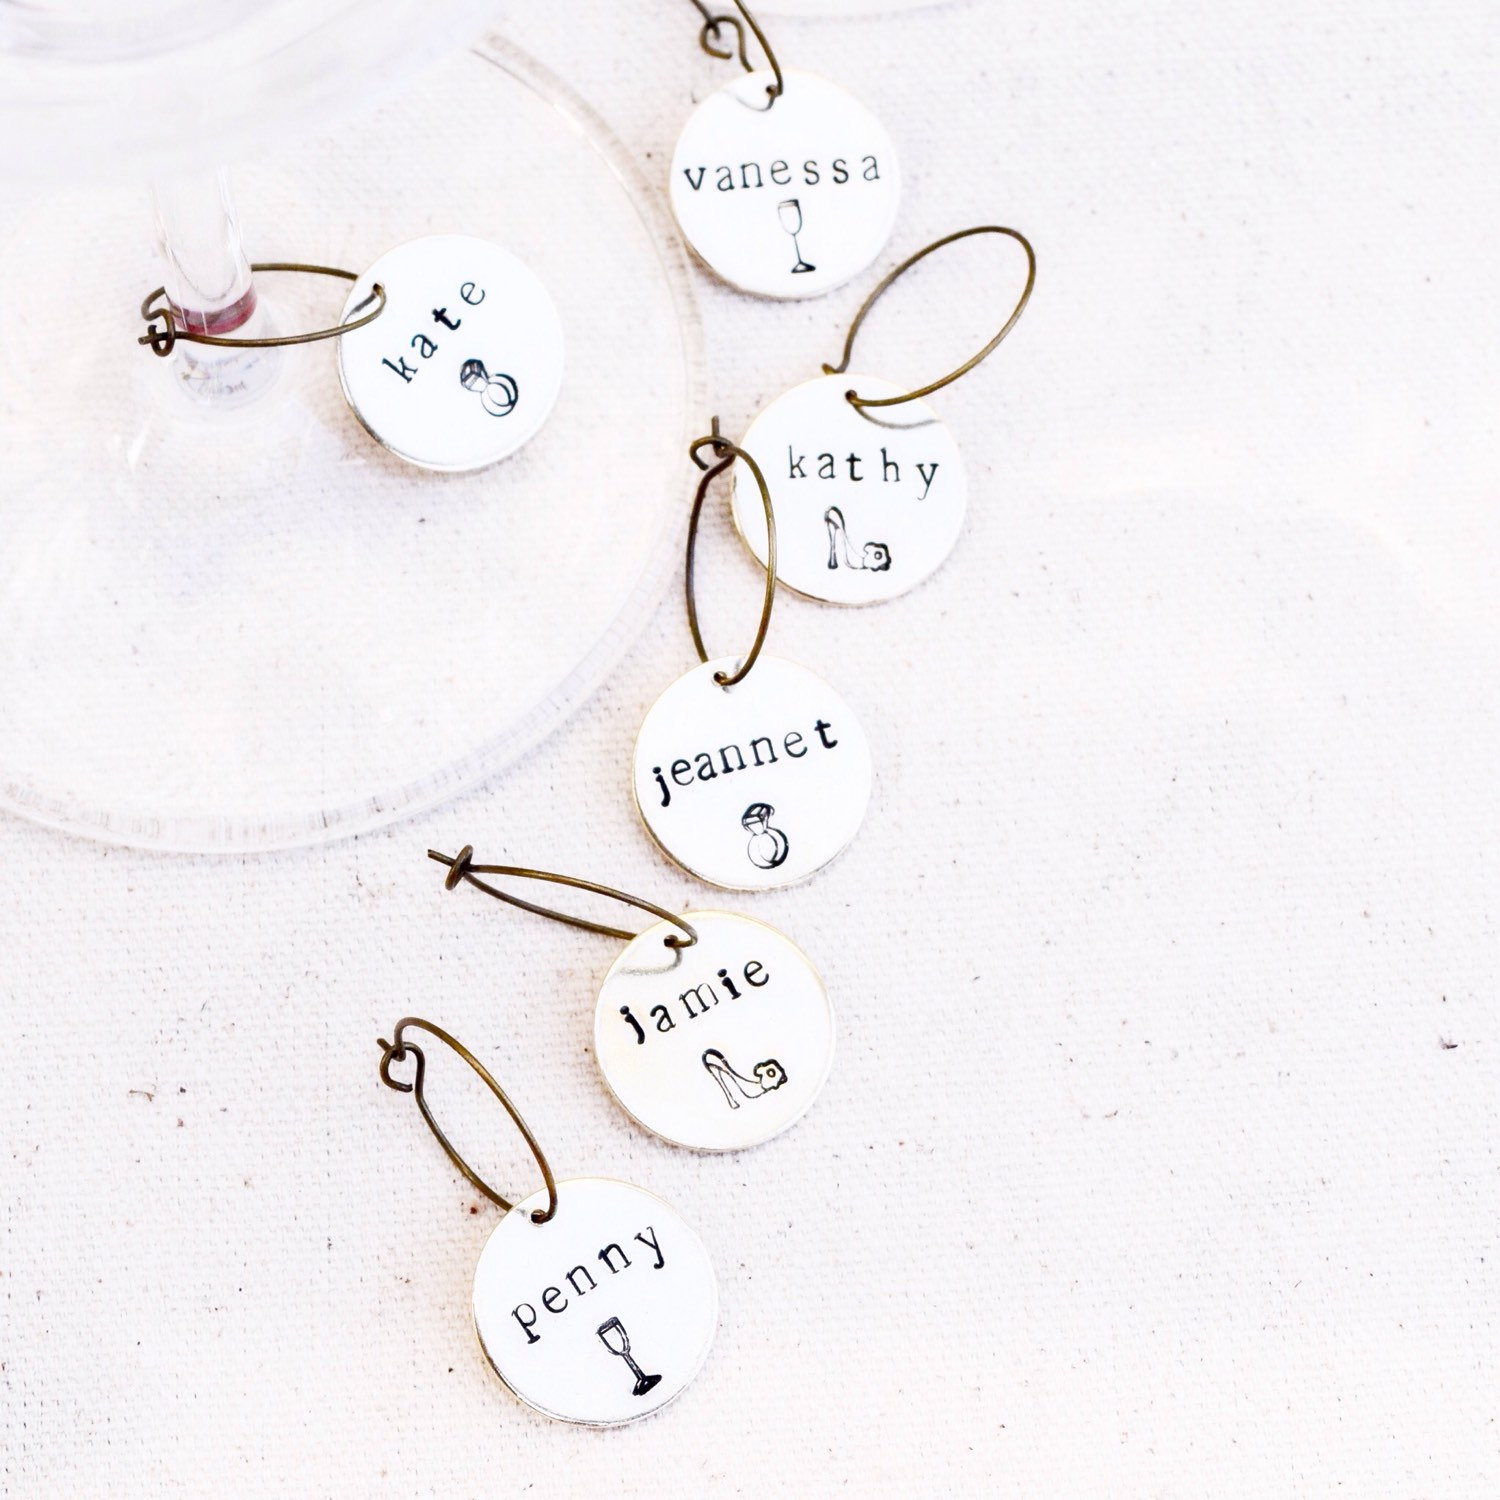 bachelorette wine charm favors | wine charms favors https://emmalinebride.com/favors/wine-charms-favors